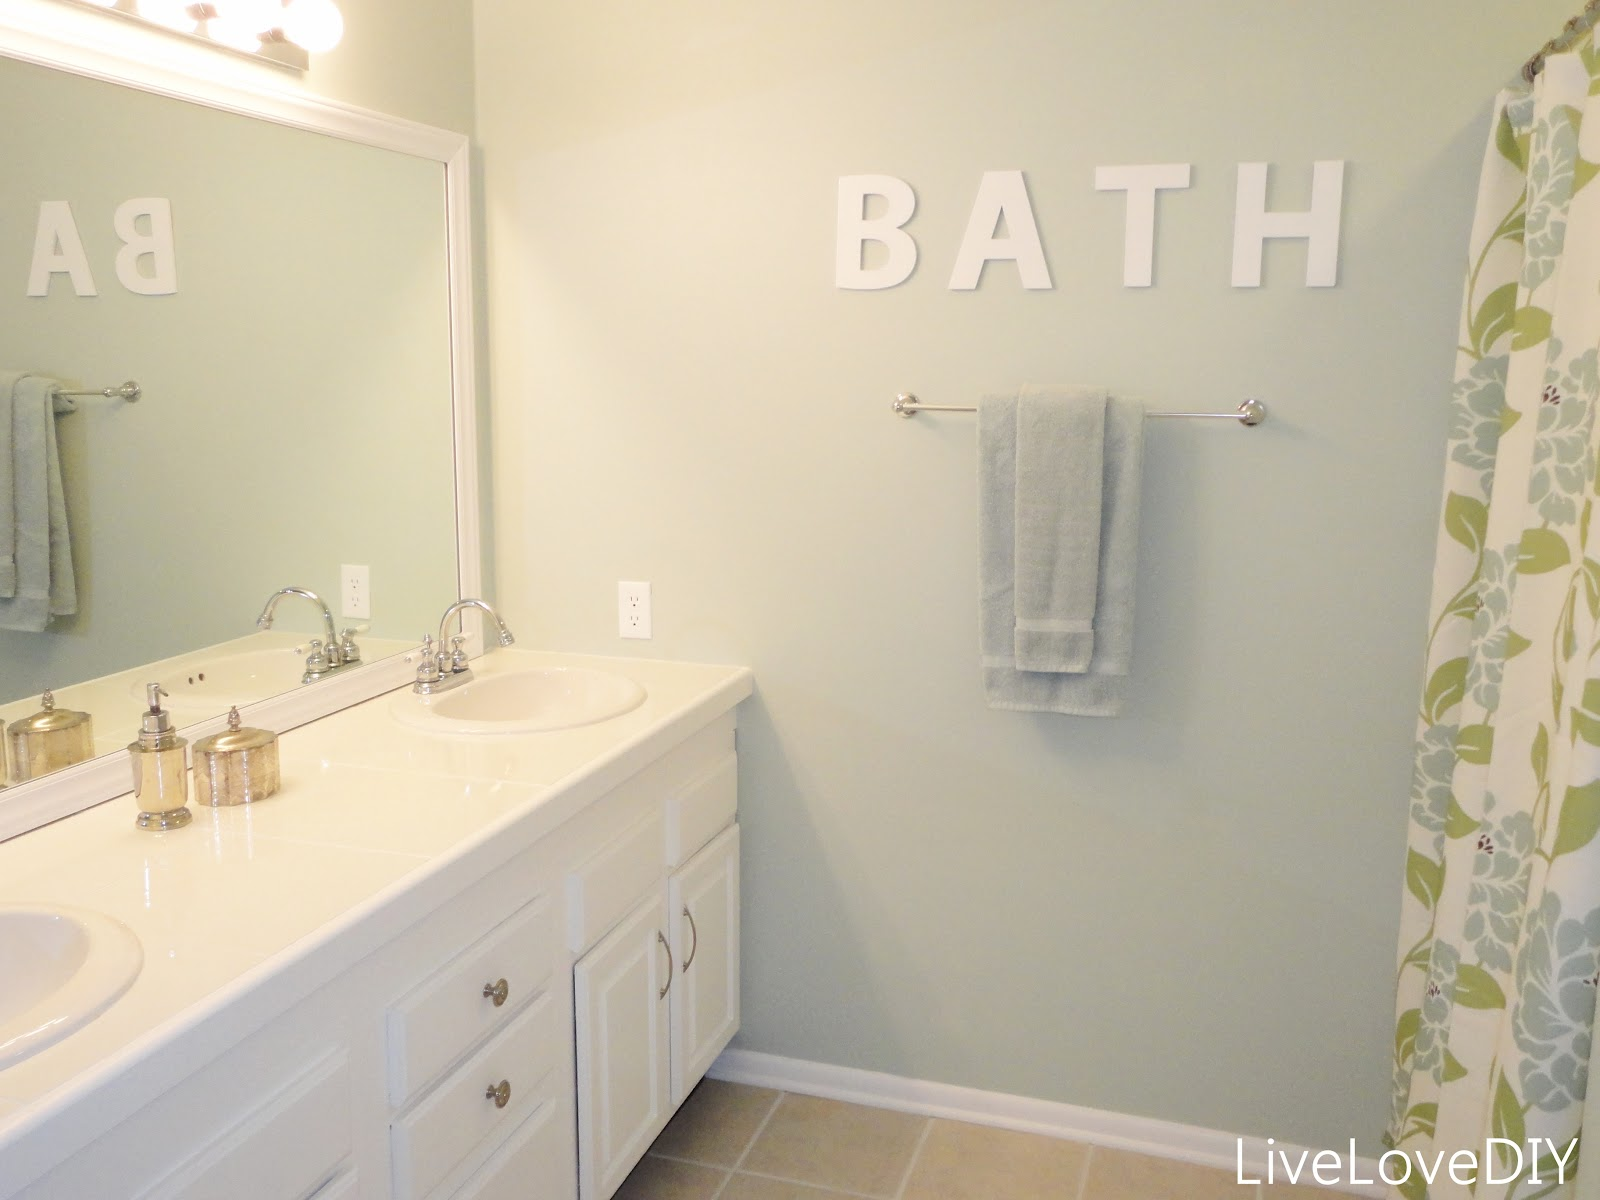 Paint Ideas Dulux Bathroom Photo Gallery And Articles Bathroom Paint Magnolia Bathroom Paint